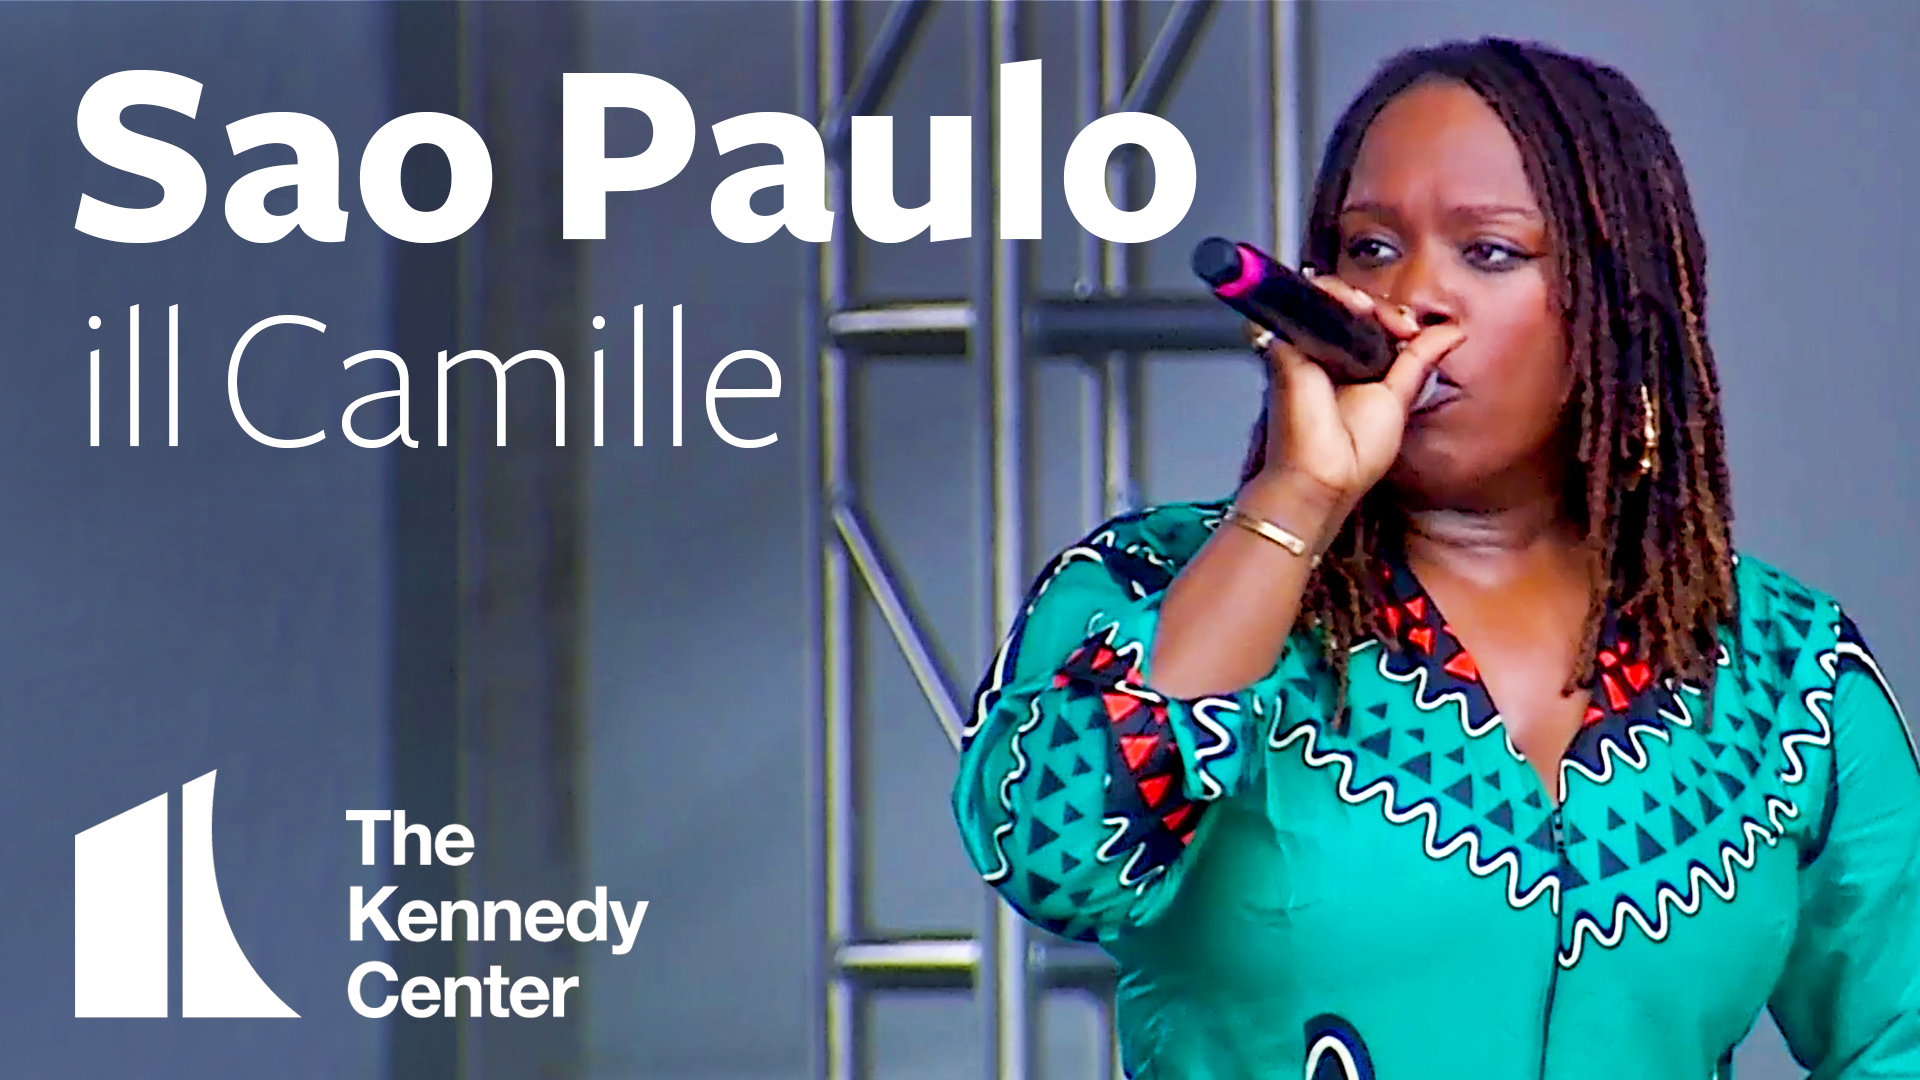 ill Camille - Sao Paulo | LIVE at The Kennedy Center